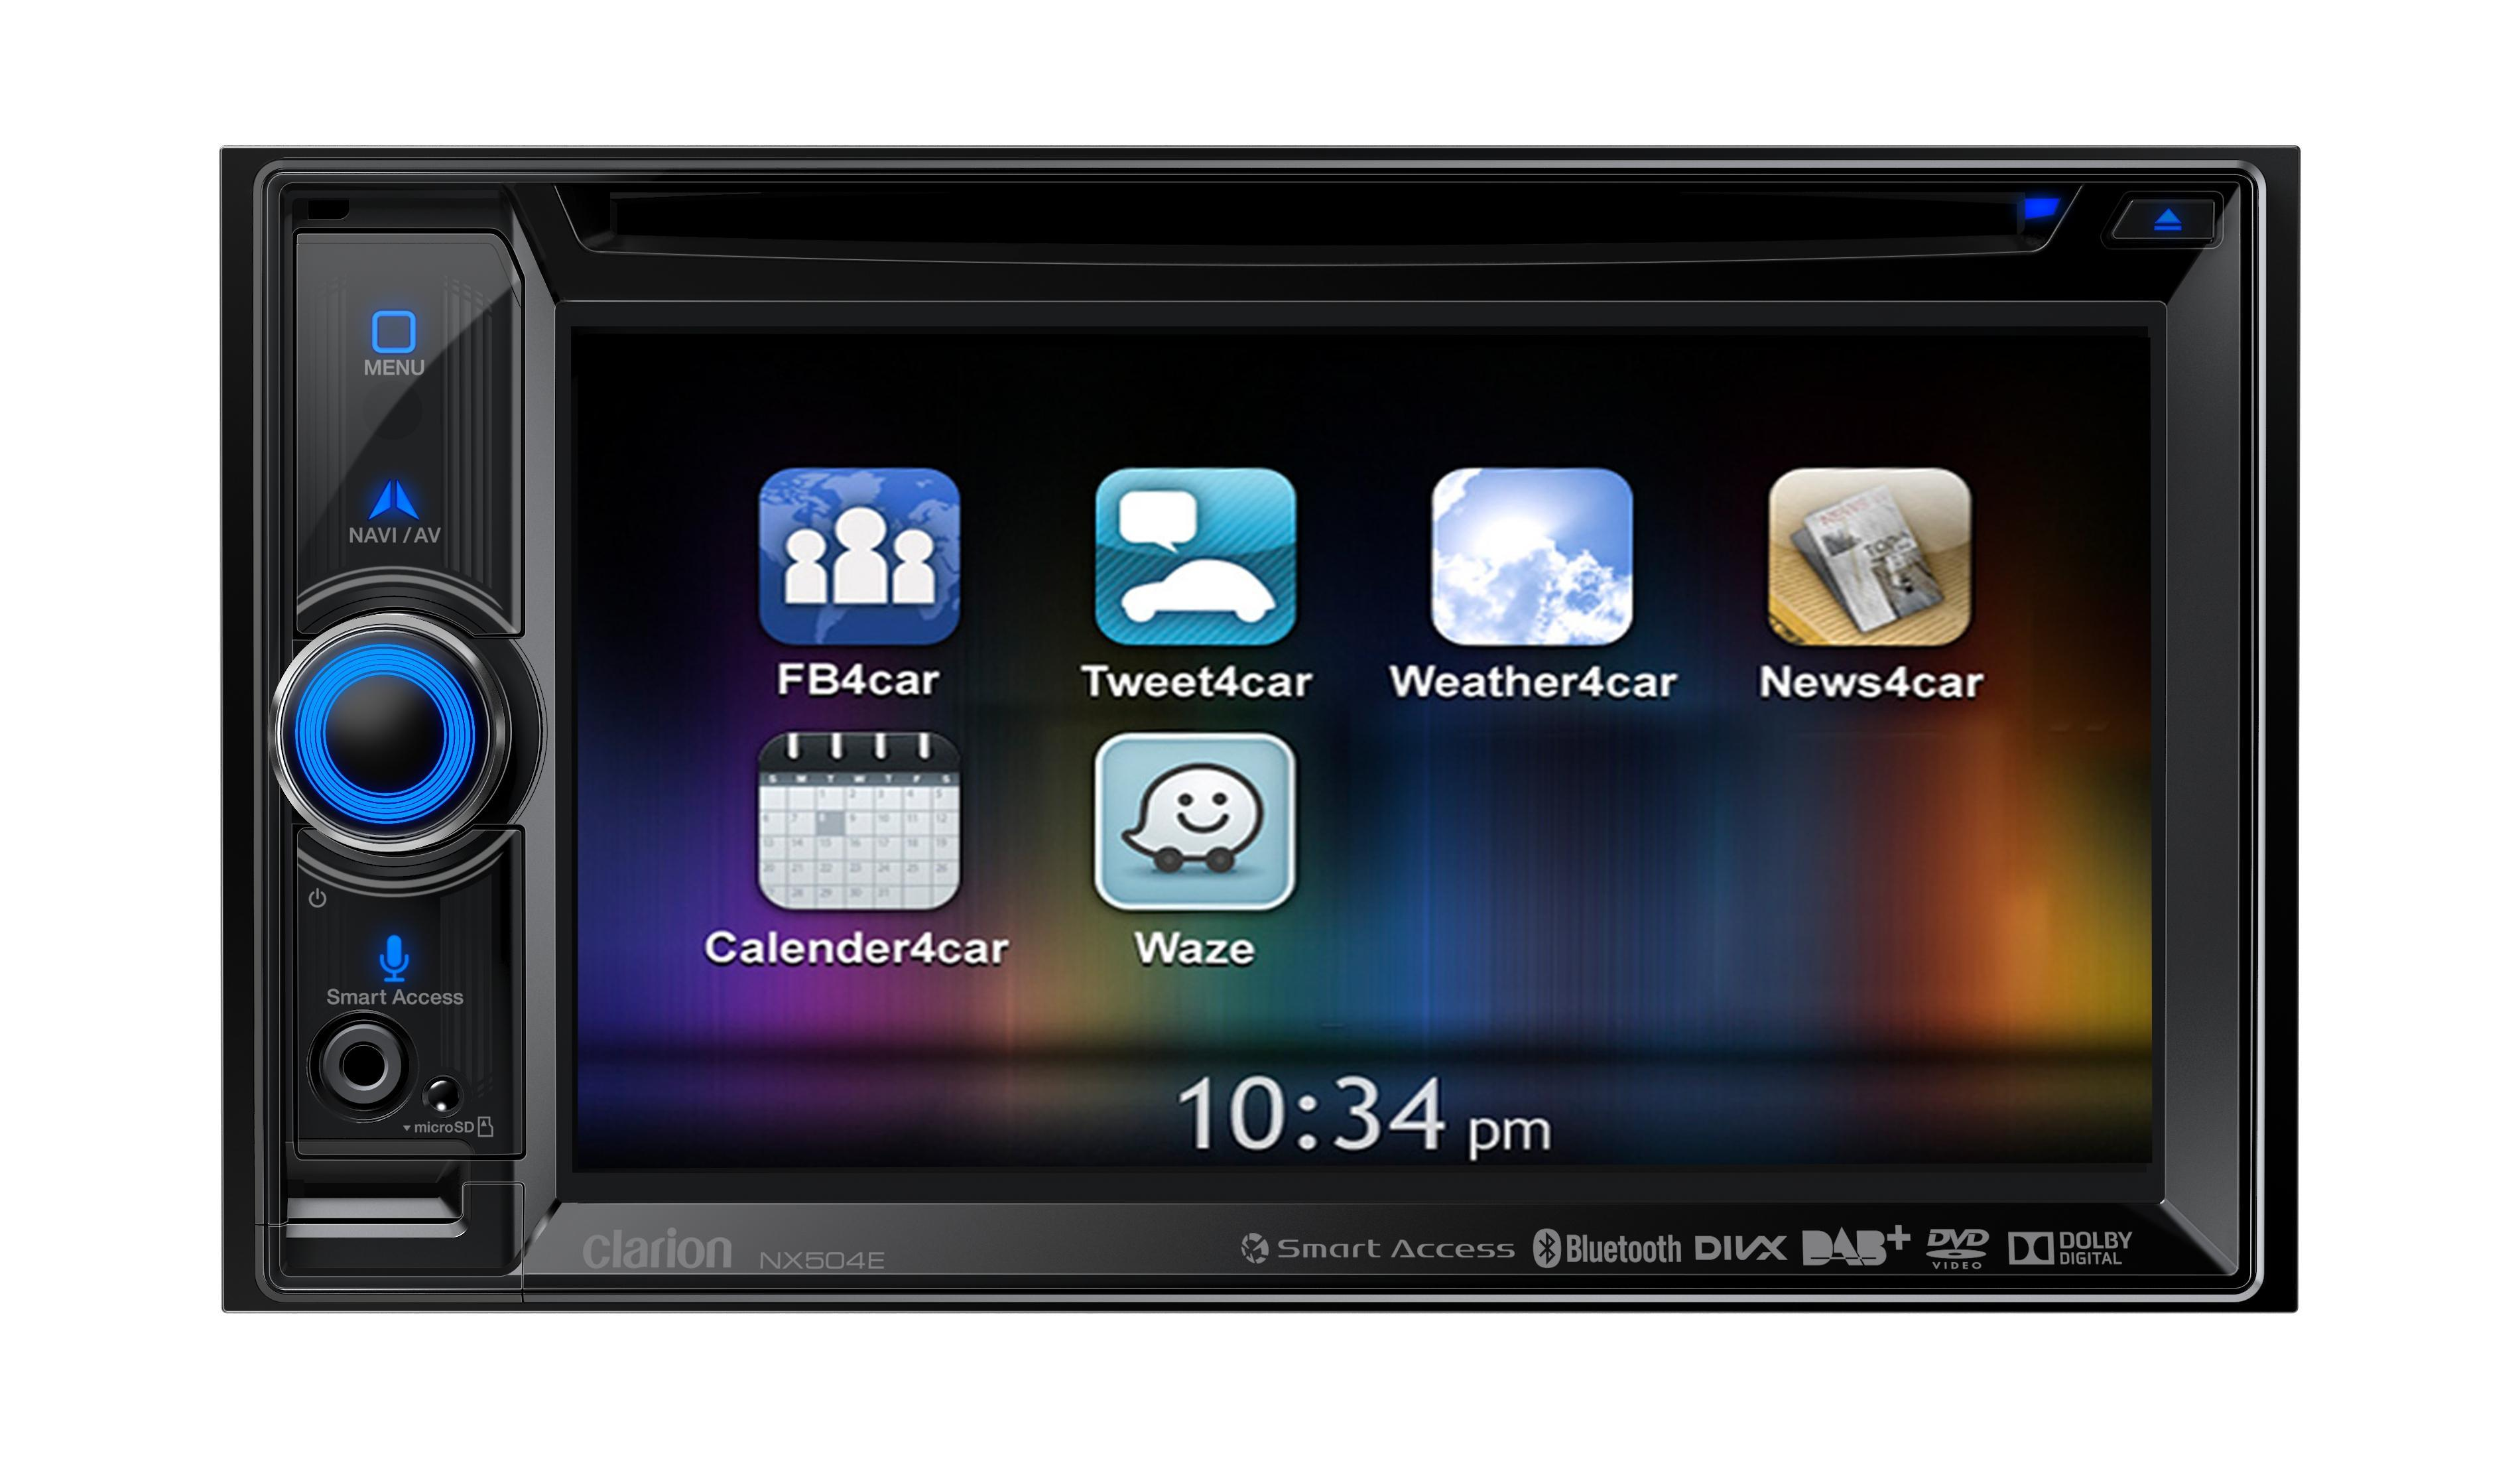 clarion nx504e dab 2 din navigation system with bkx001. Black Bedroom Furniture Sets. Home Design Ideas